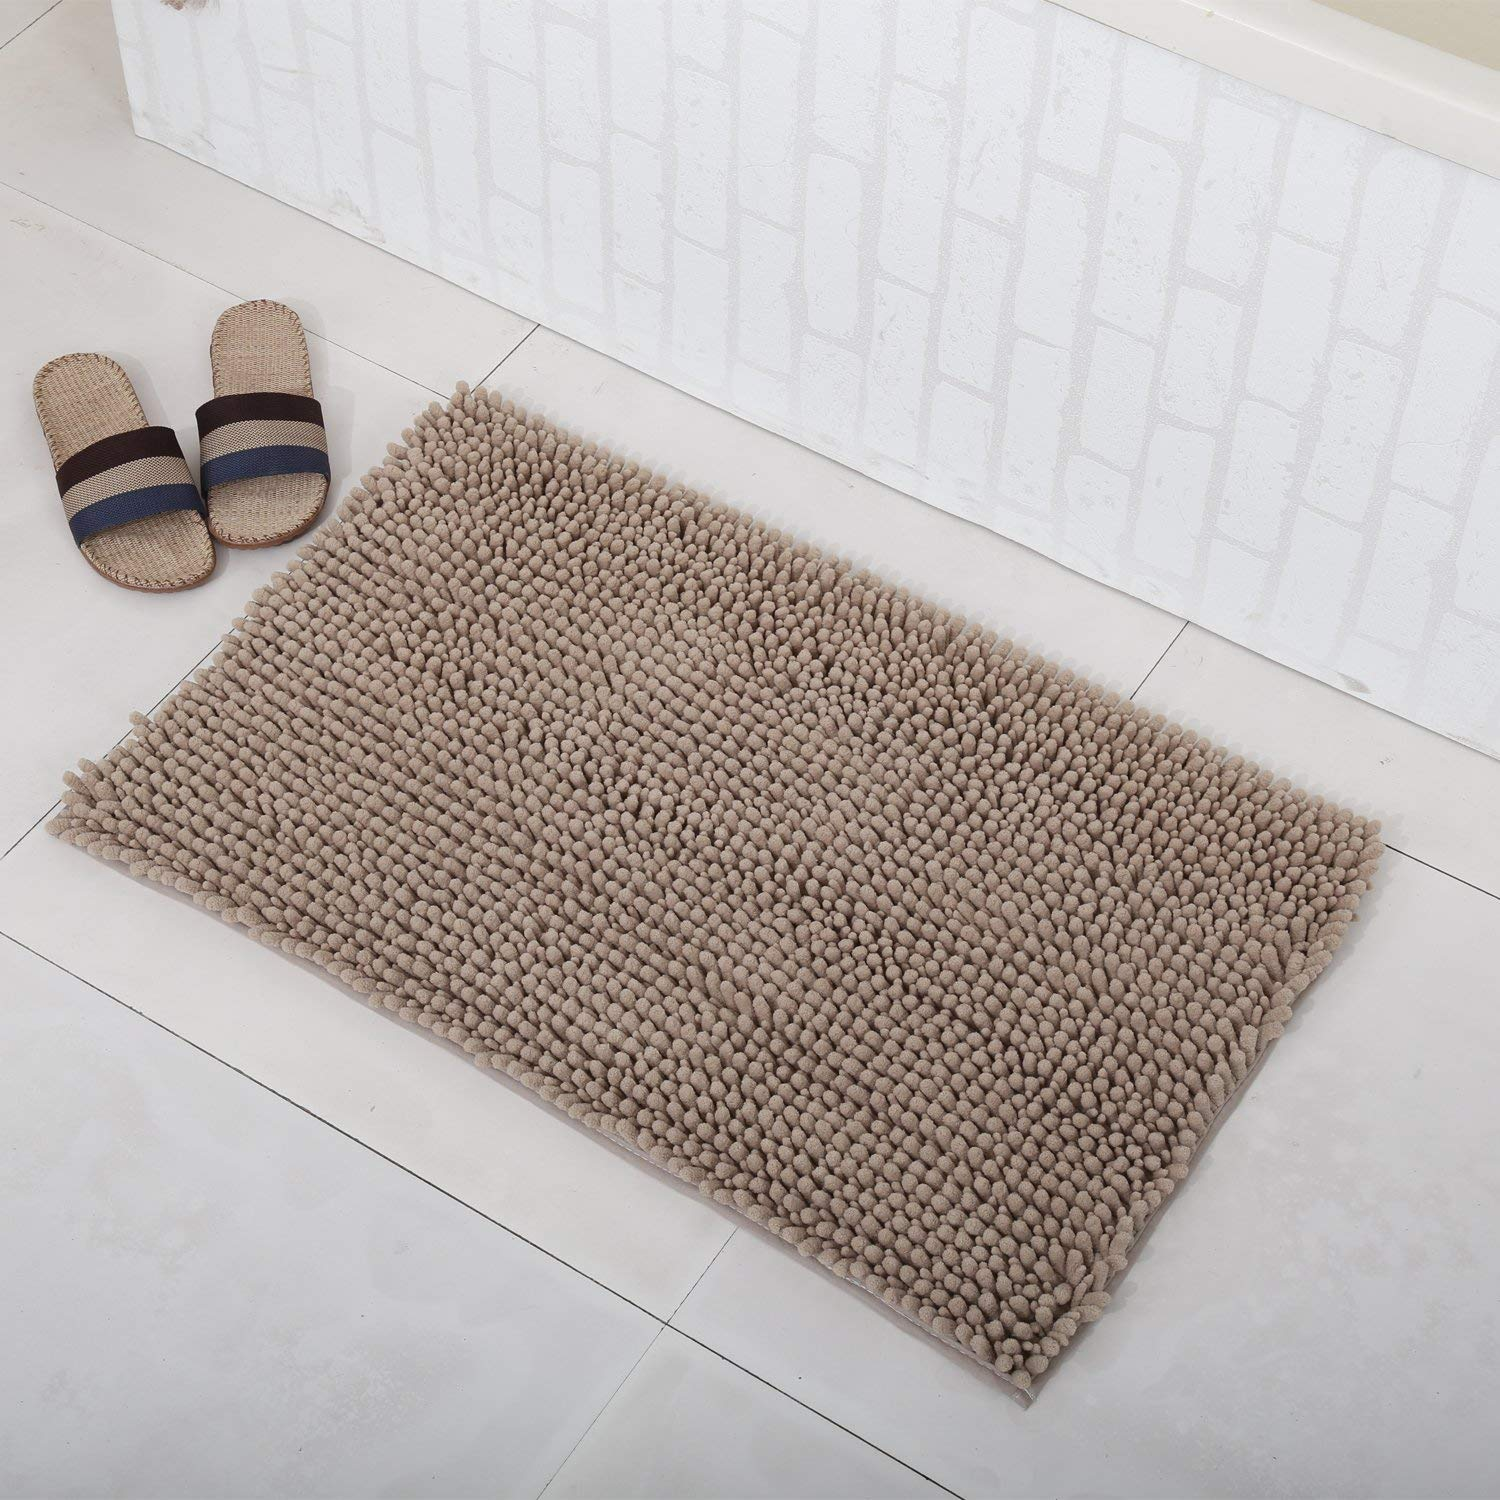 Non Slip Microfiber Bath Mat Bathroom Rugs For Floors Tub